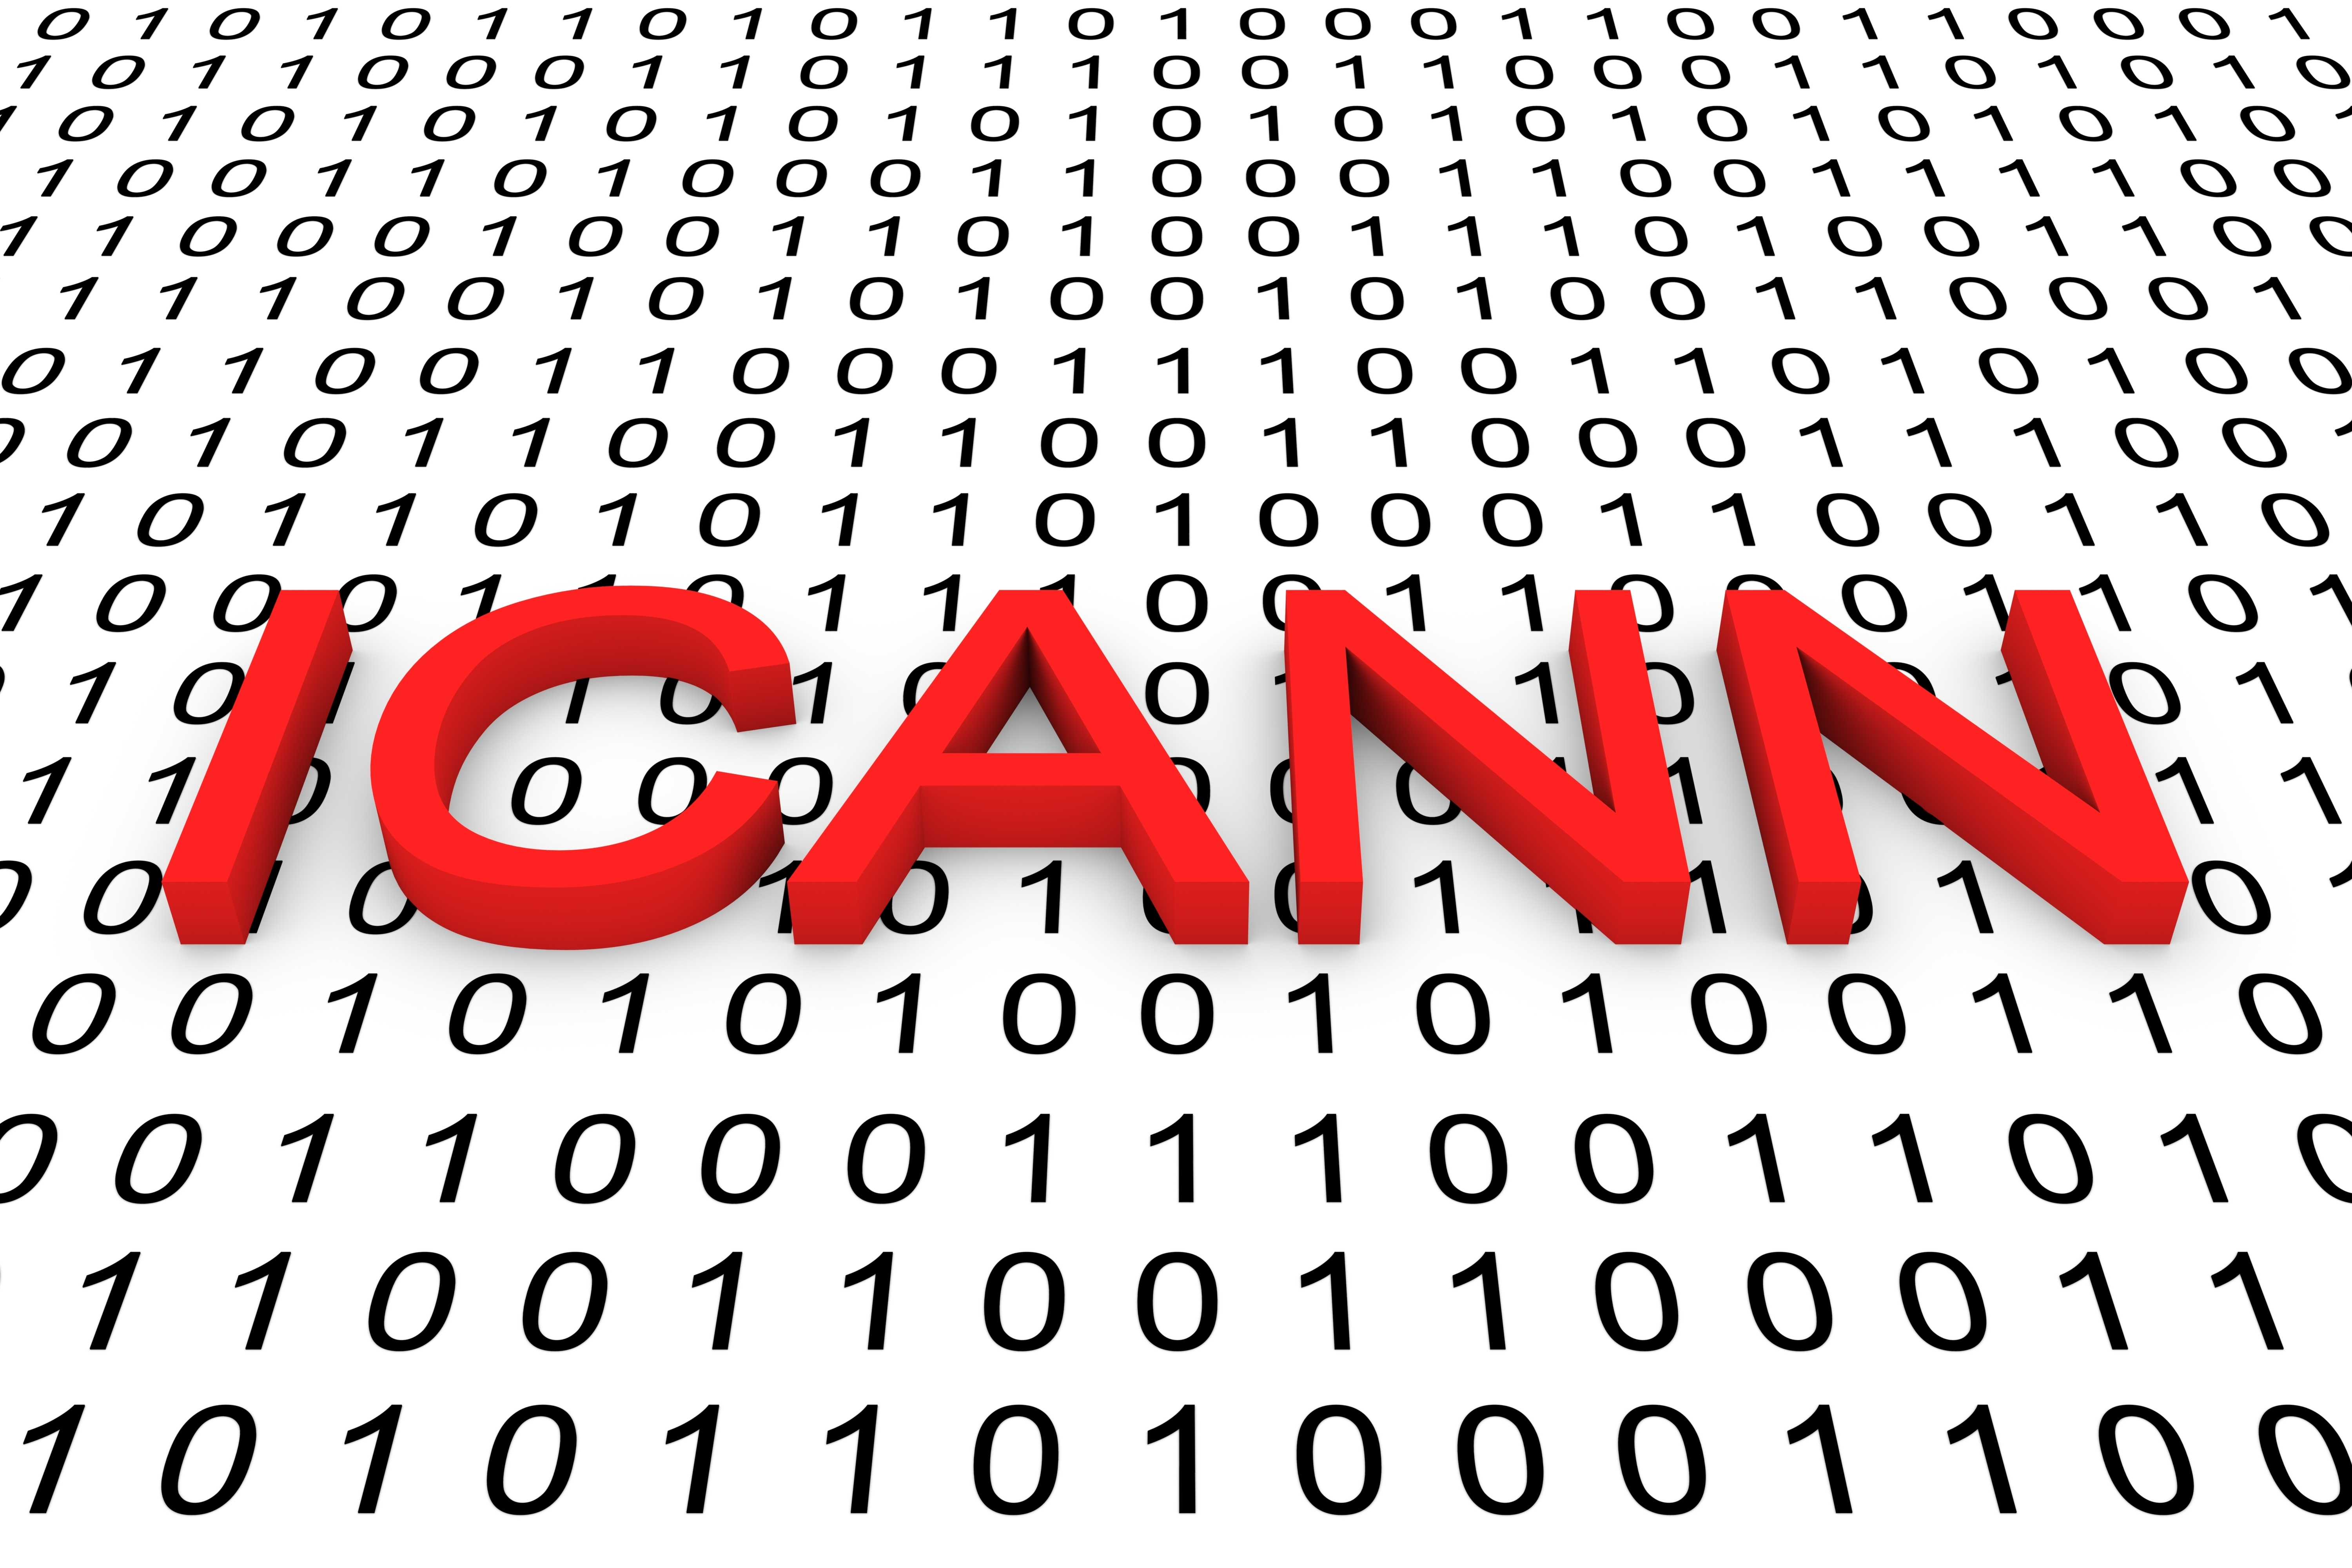 ICANN board blocks private equity firm's .org purchase | IT PRO